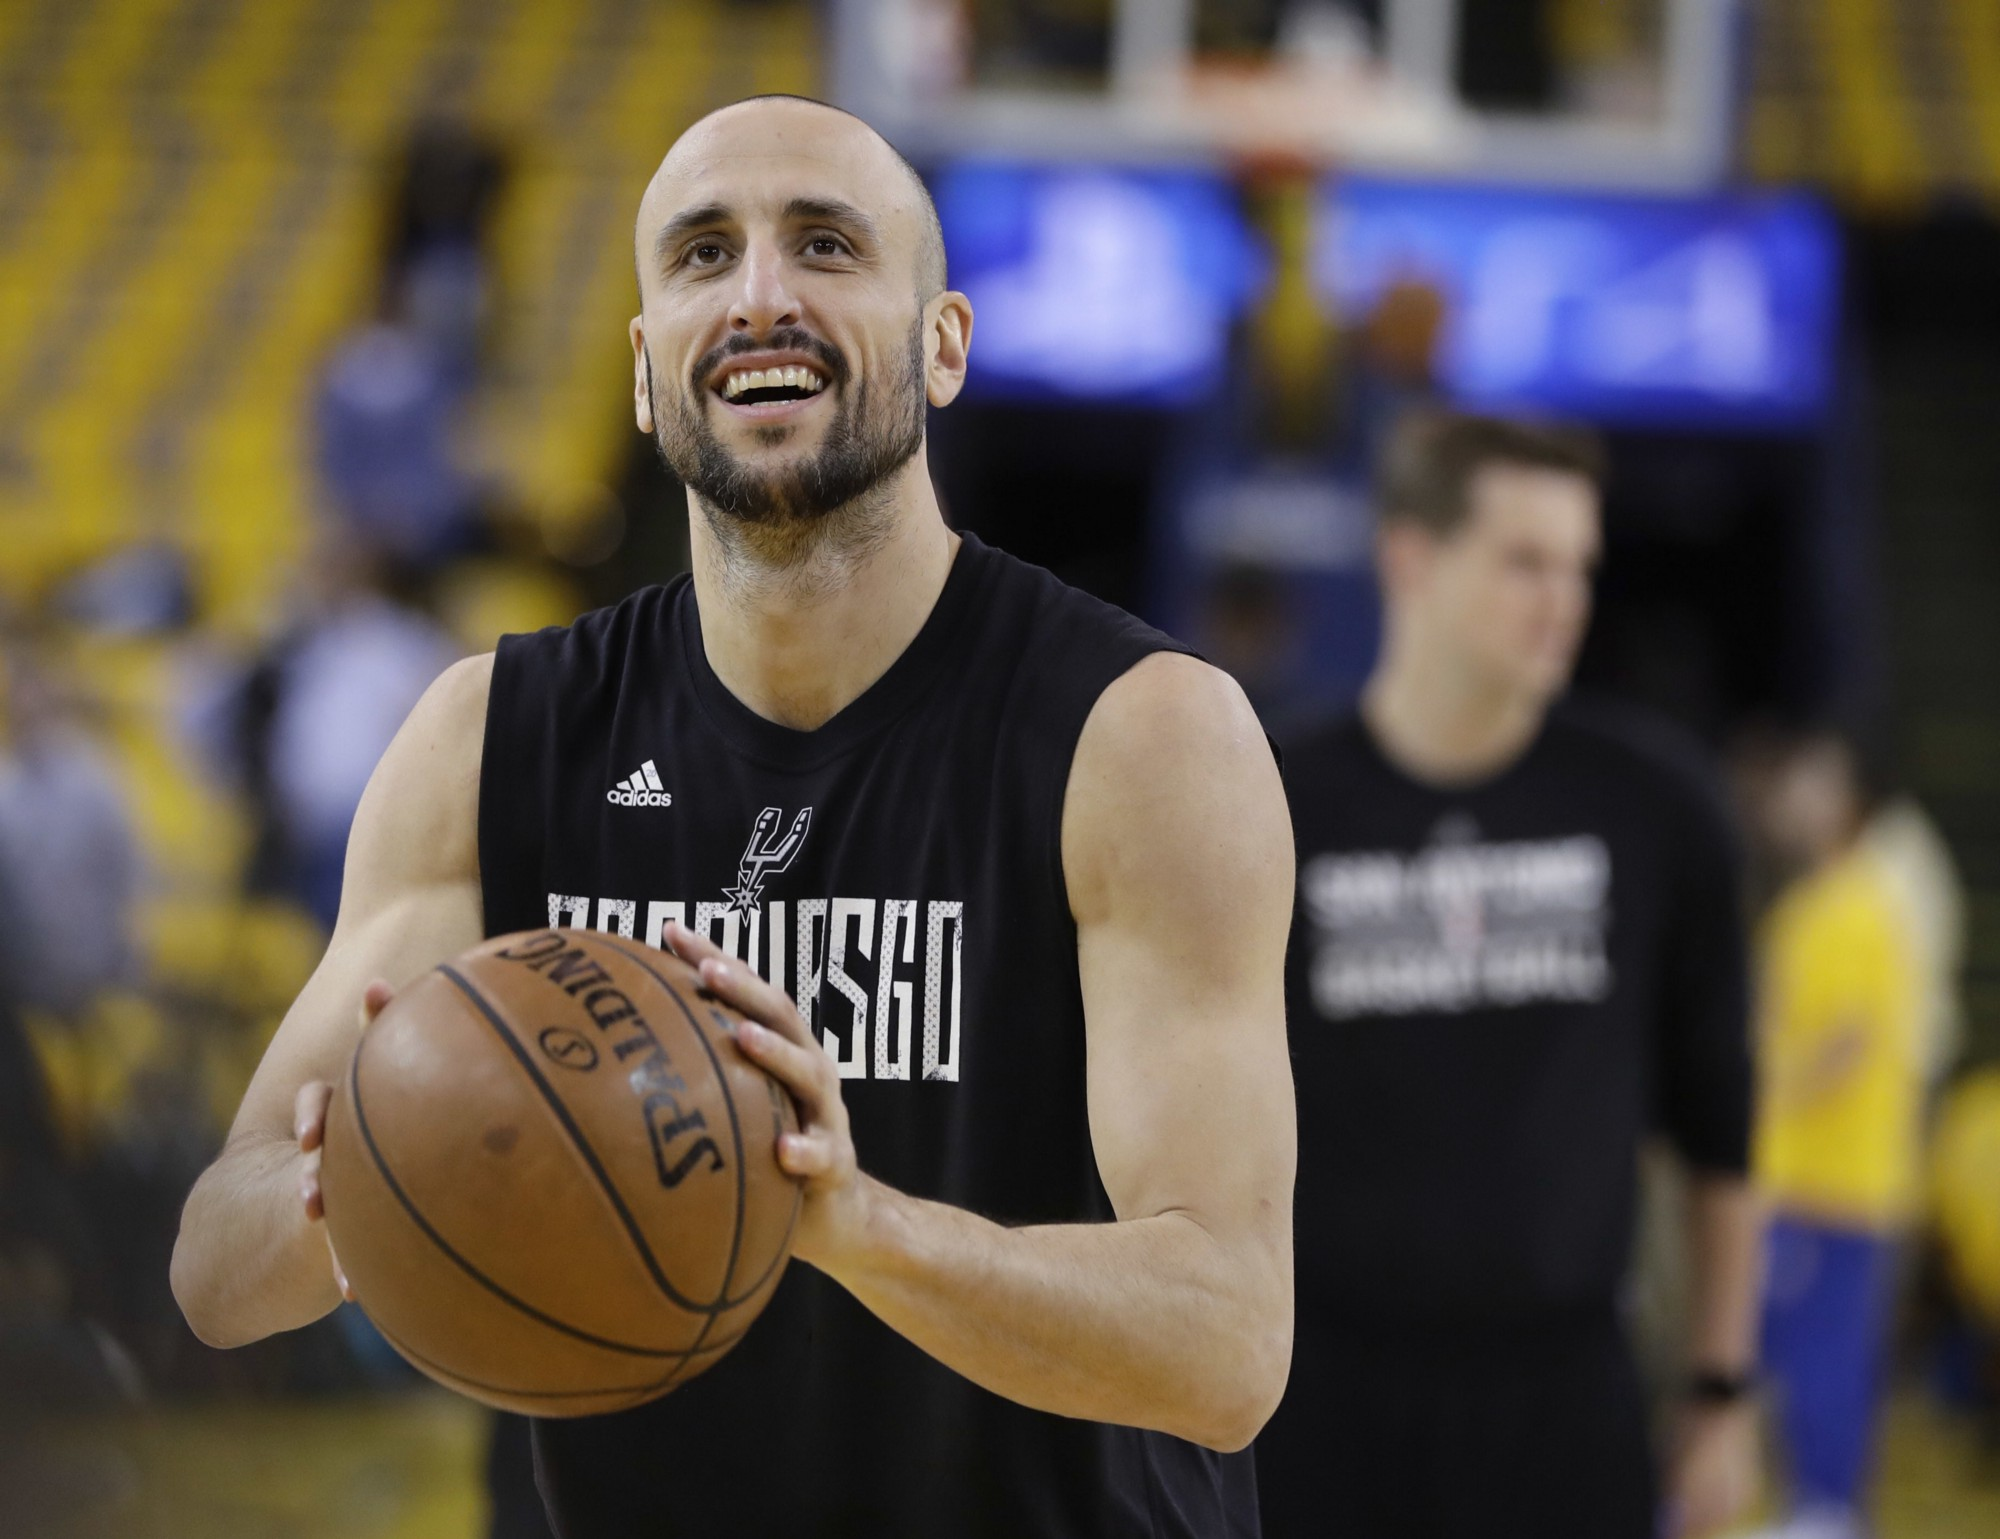 Manu Ginobili finalizing details of return to Spurs